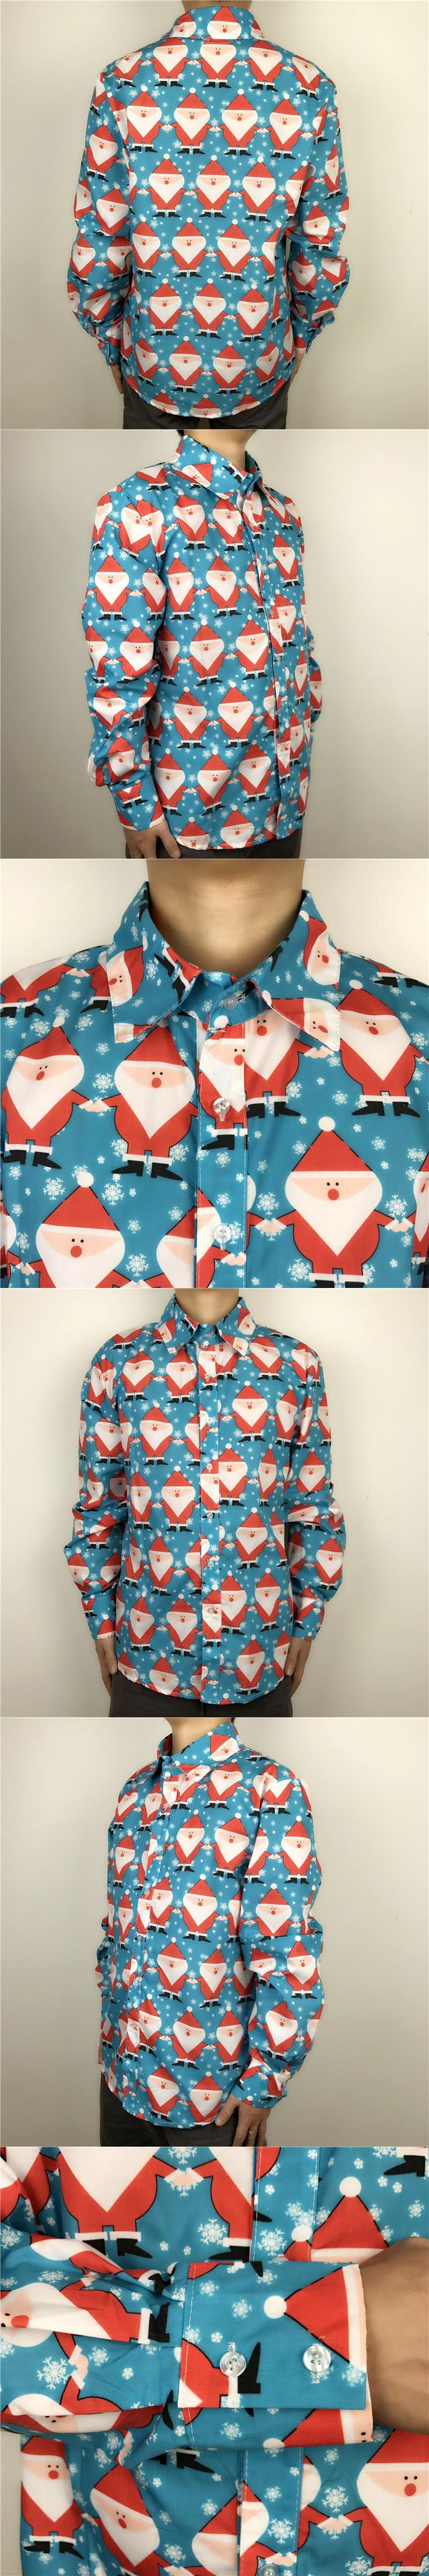 Stand Out Long Sleeve Ugly Christmas Shirt for Men Cool Santa Claus Patterned Xmas Party Shirt Light Blue Plus Size M-2XL